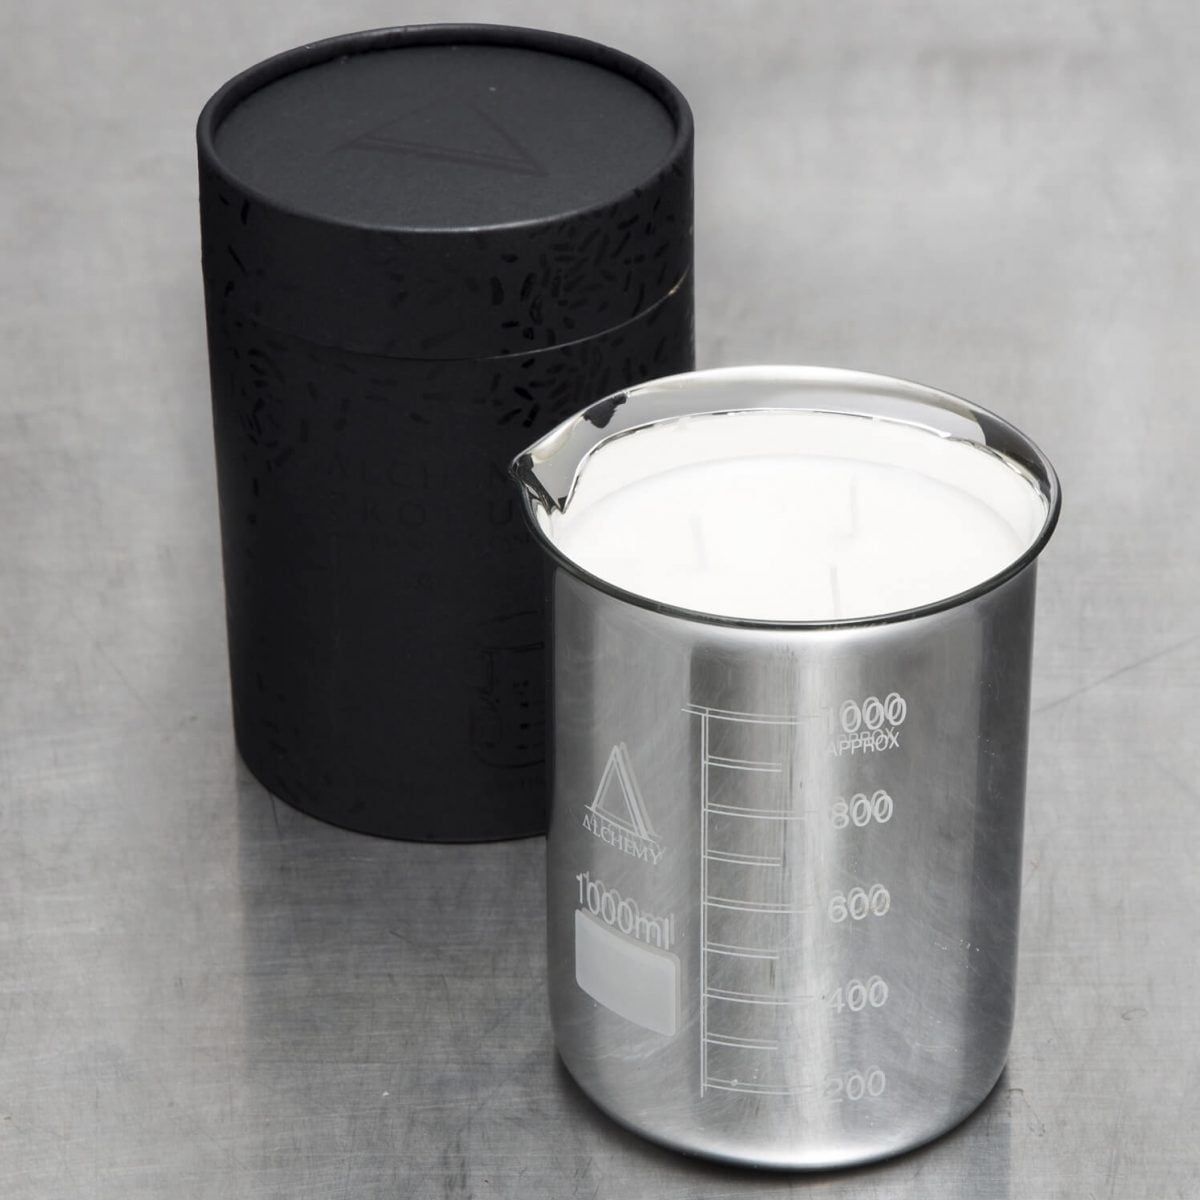 Shop Weddings Alchemy Produx Soy Wax Candles Silver